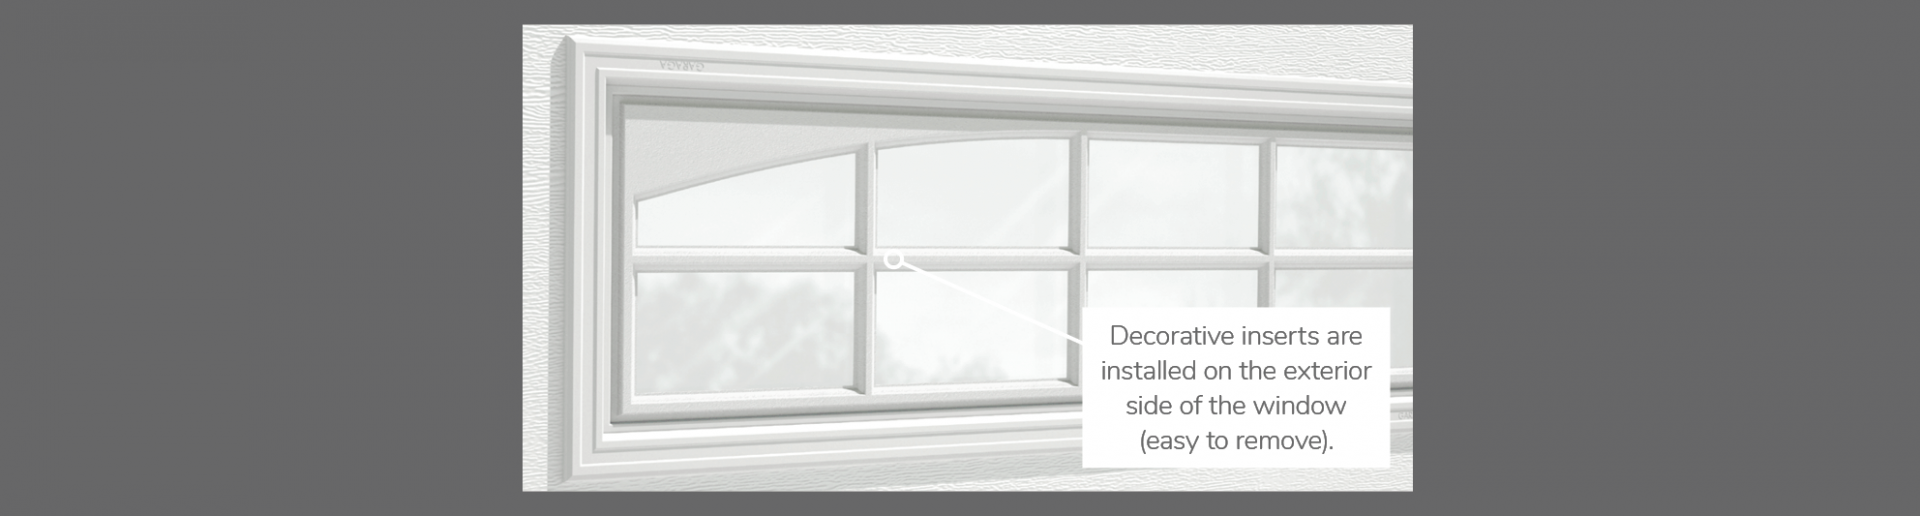 "Double Stockton Arch Decorative Insert, 40"" x 13"", available for door R-16"